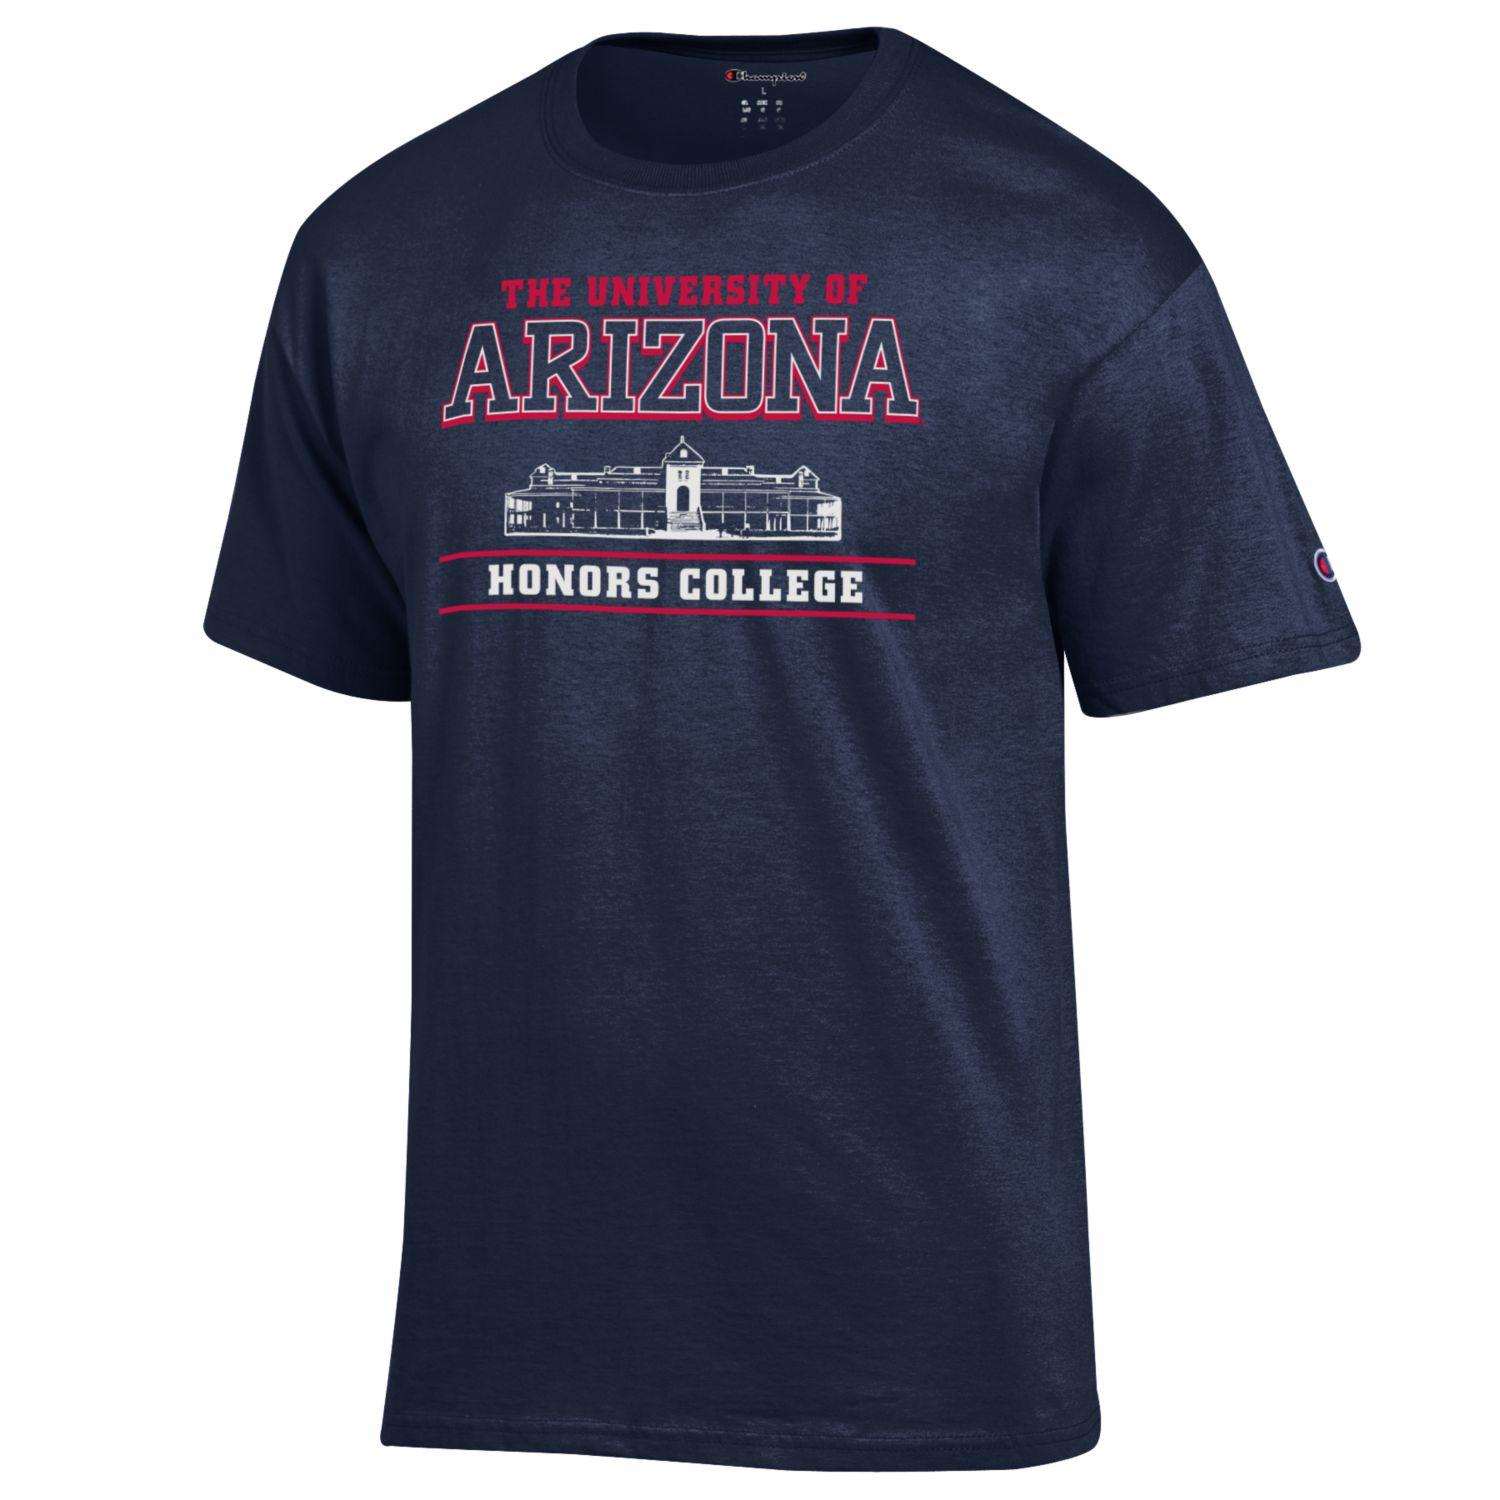 Image For Champion: Univesity of Arizona Honors College Tee -Navy